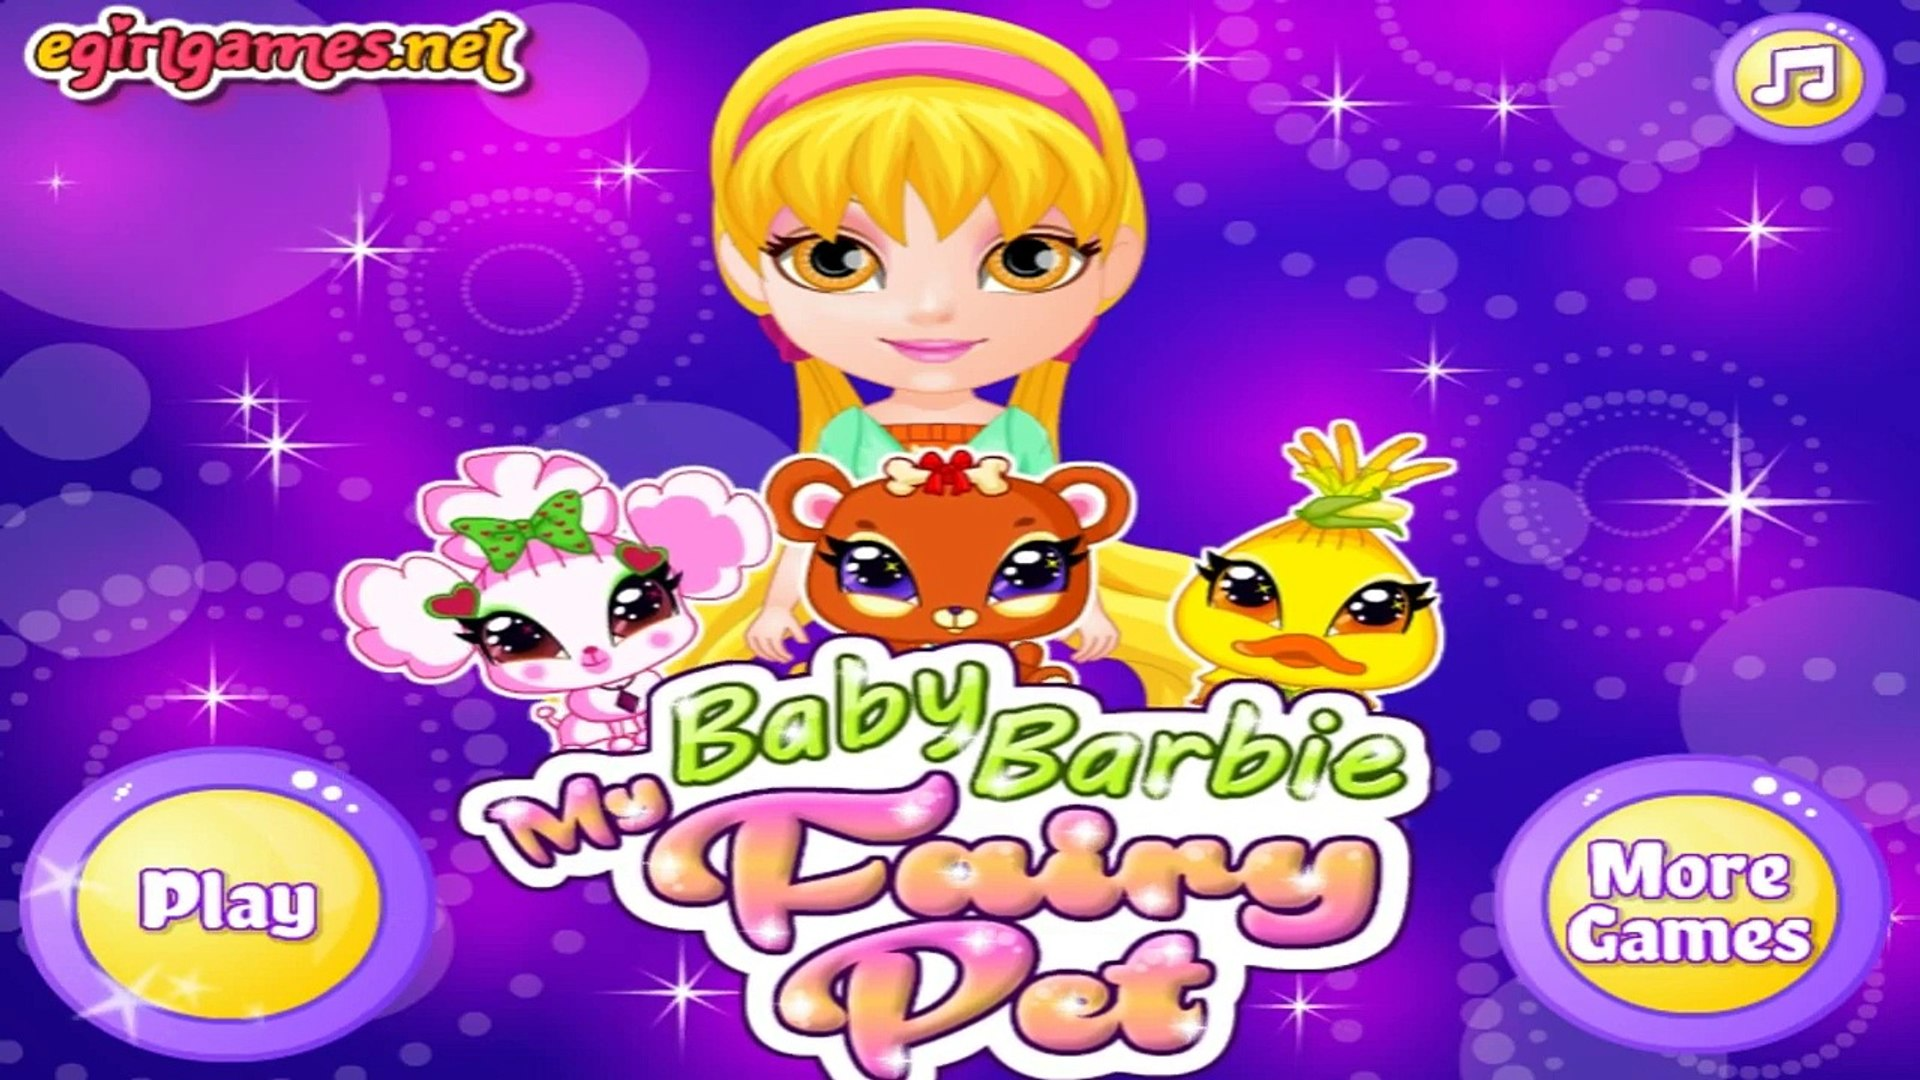 Baby Barbie My Fairy Pets | Best Game for Little Girls - Baby Games To Play